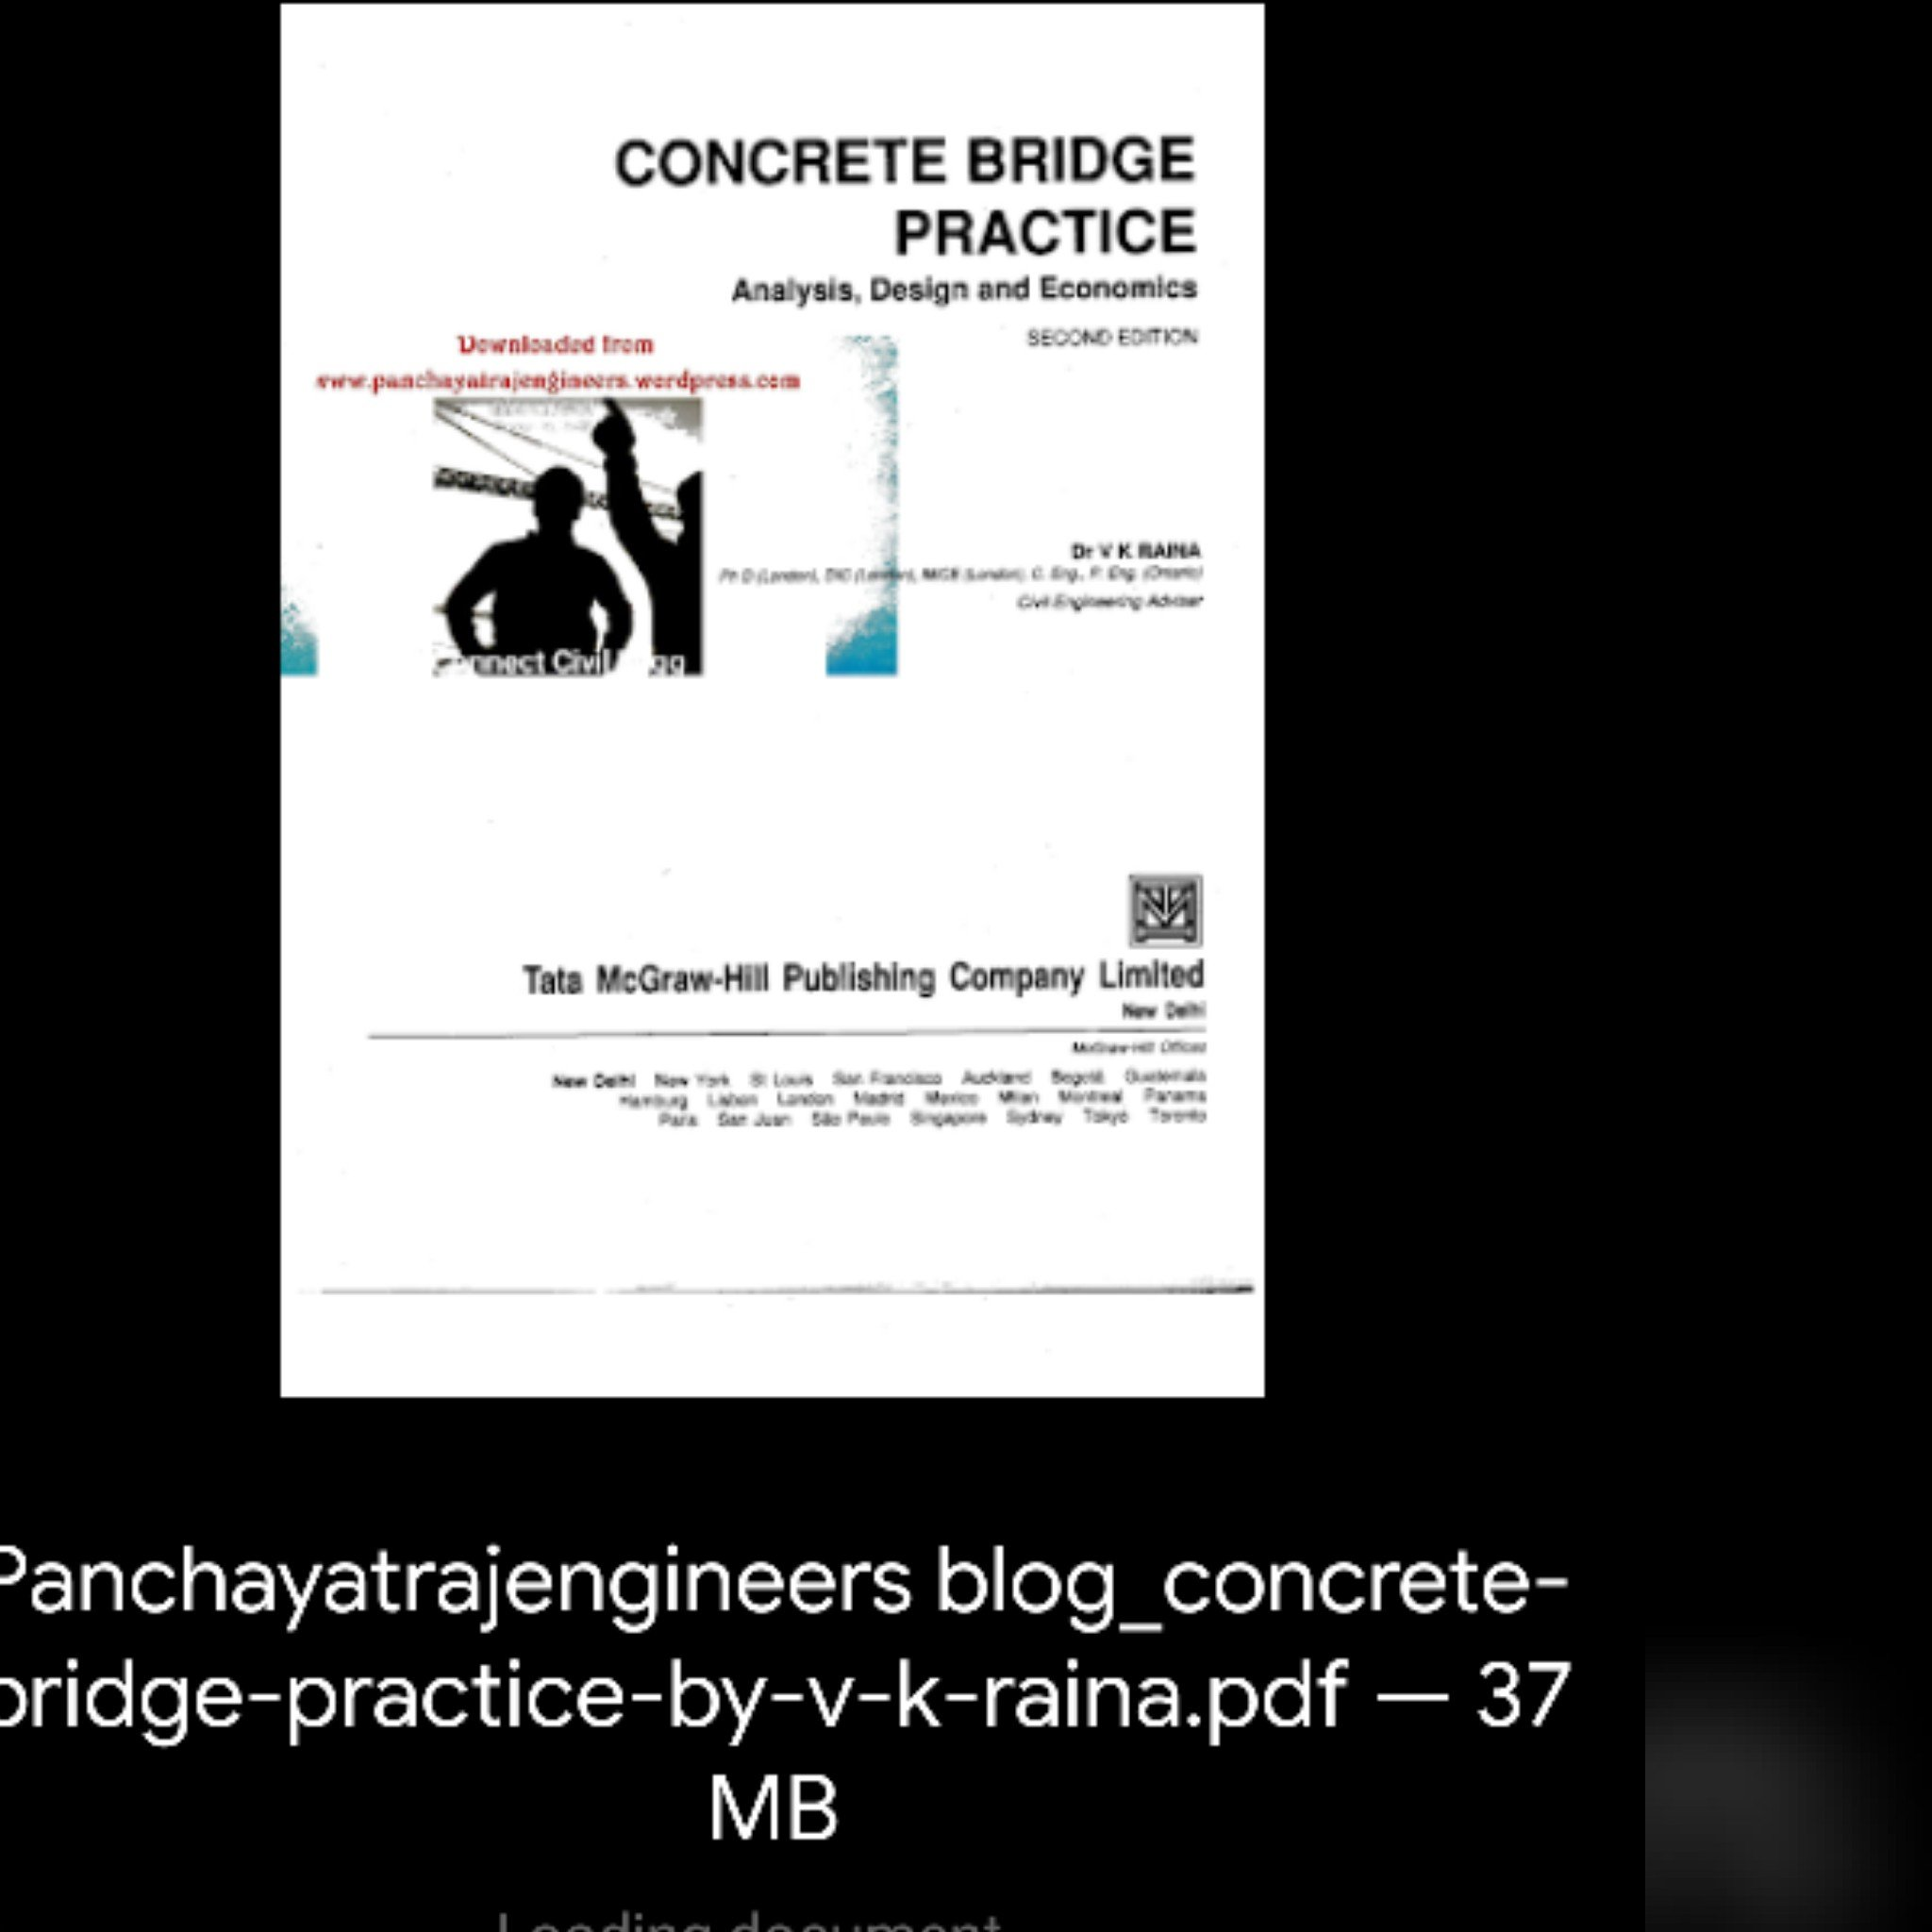 Concrete Bridge Practice by V K Raina pdf – Panchayati Raj Engineers